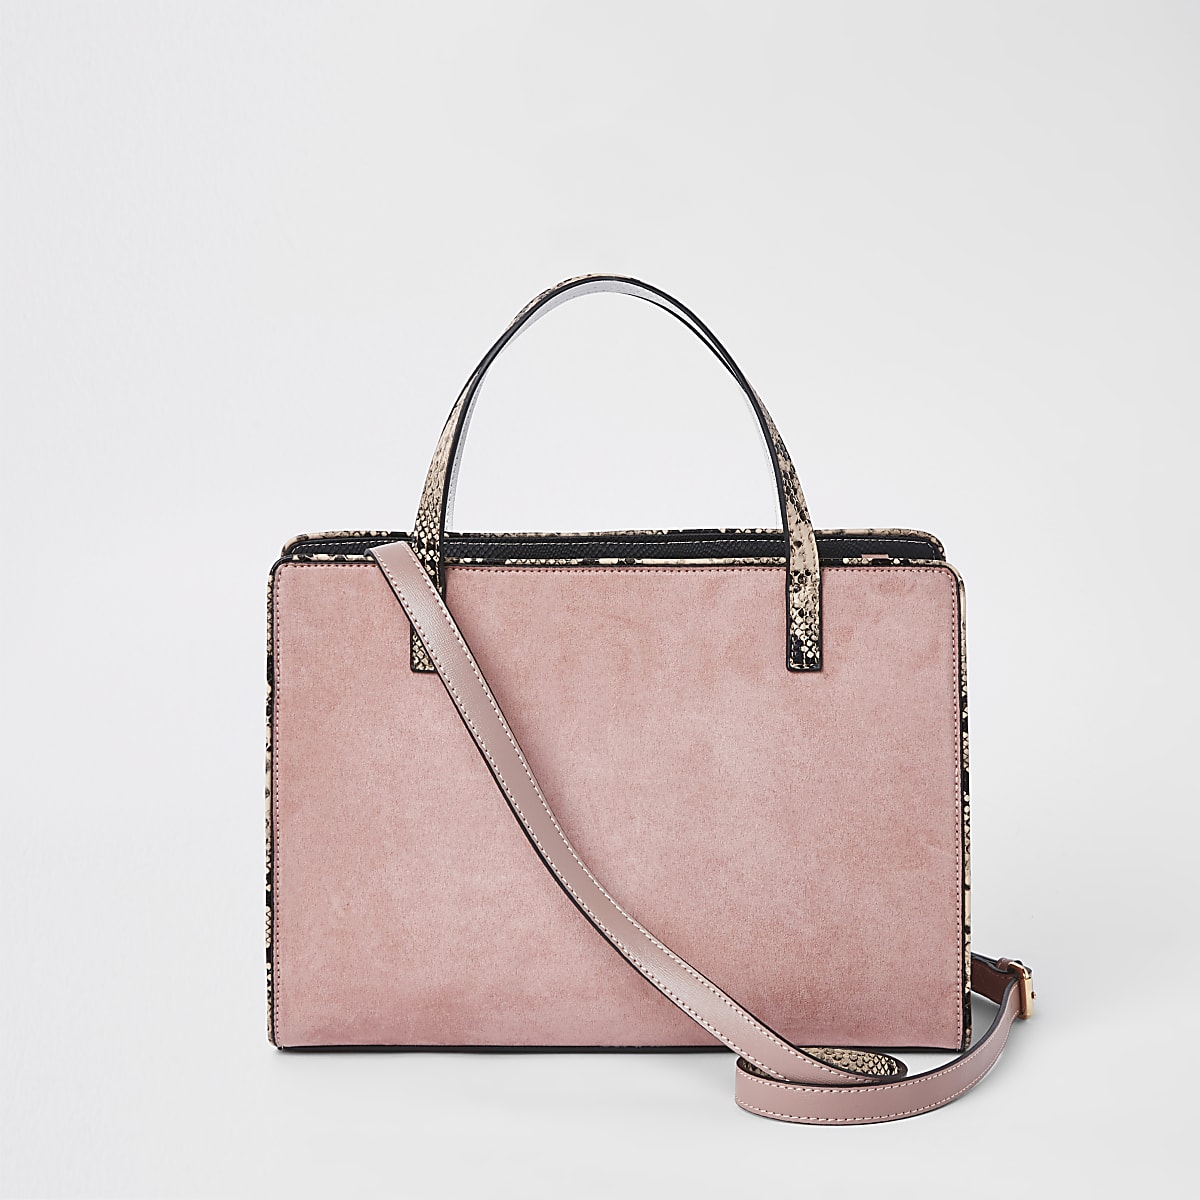 0d990f2e9 Light pink contrast snake panel tote bag - Shopper & Tote Bags ...